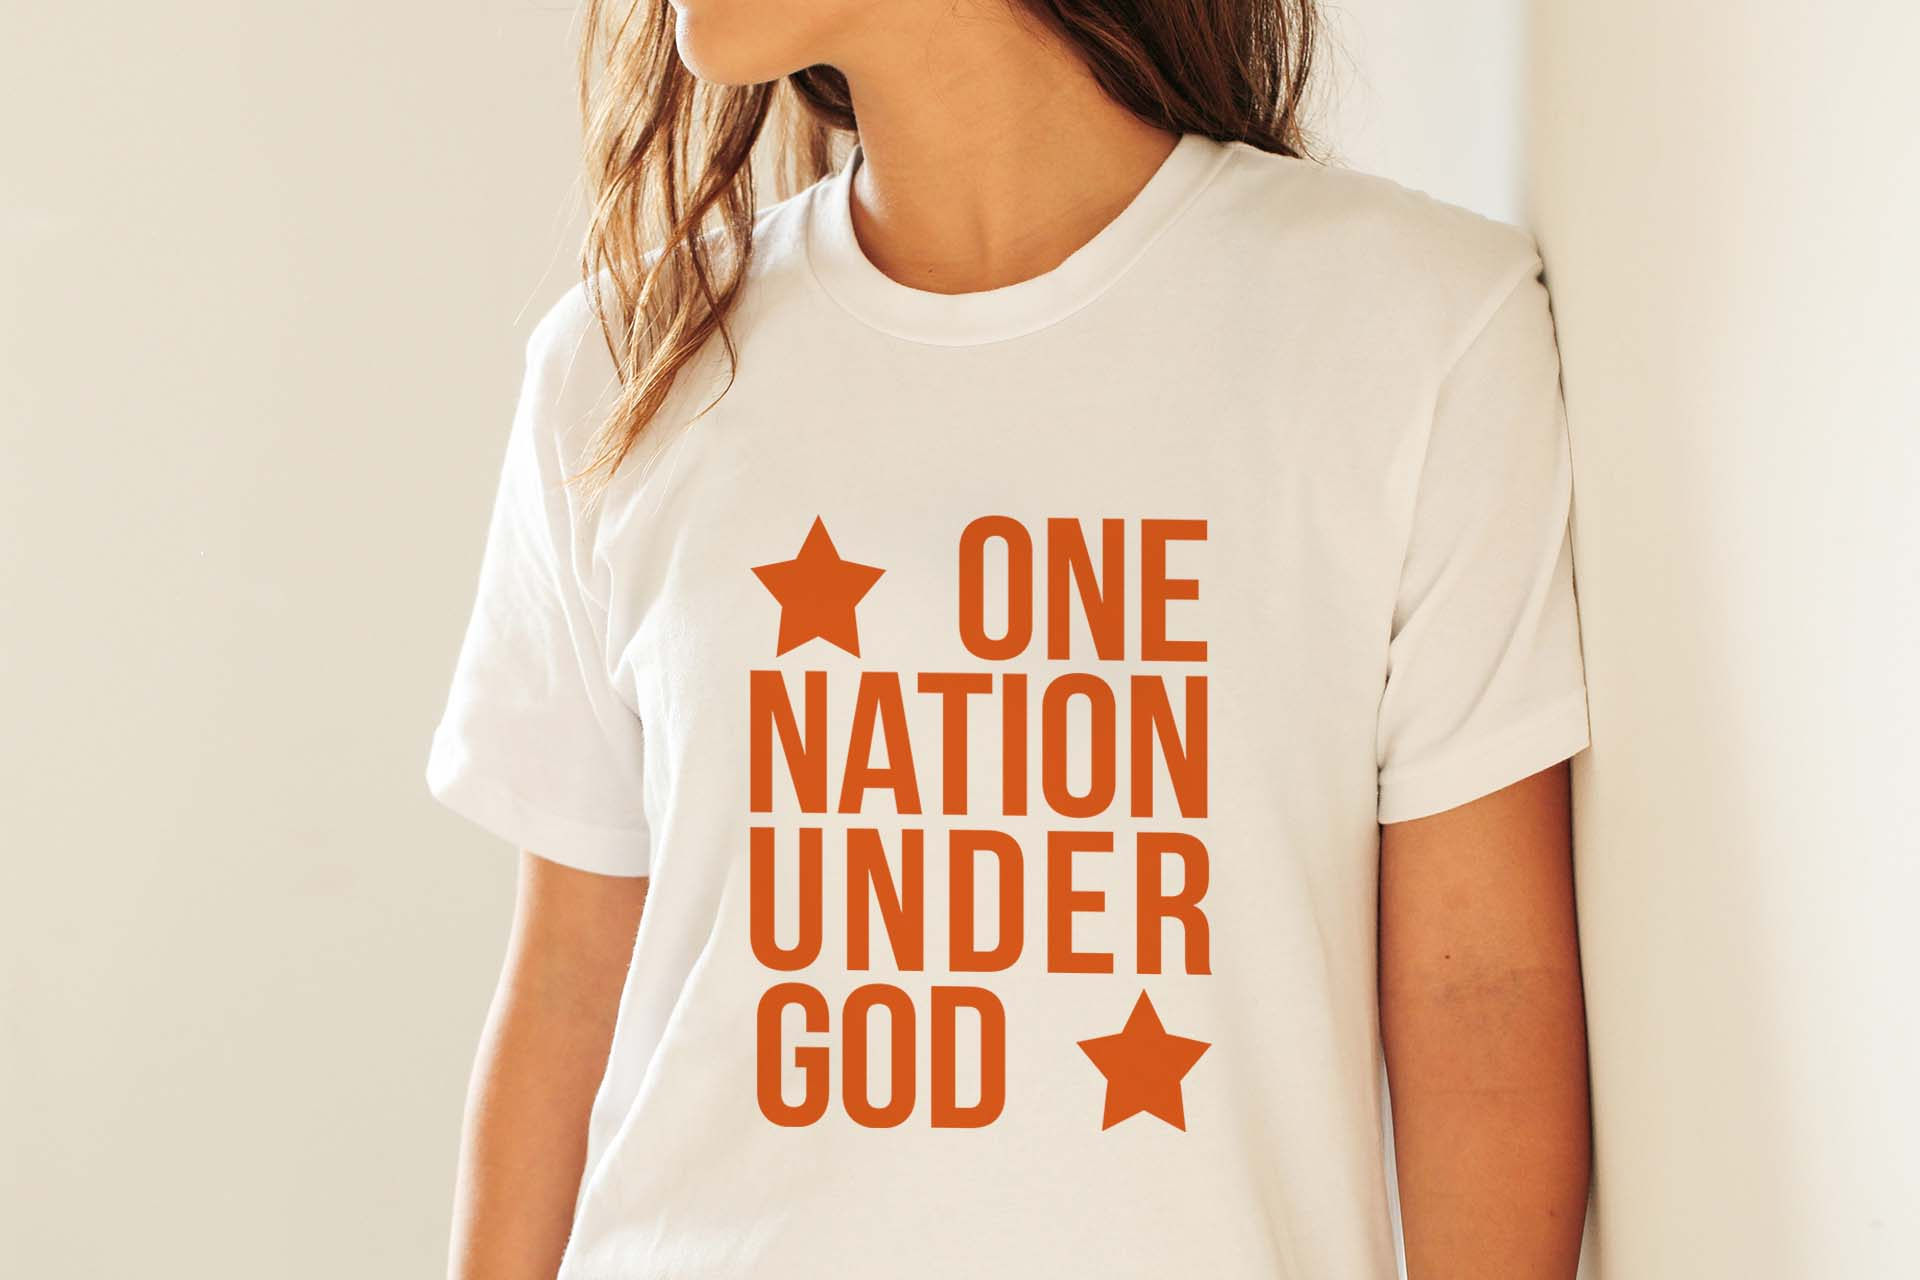 One nation under God SVG PNG EPS DXF 4th of July svg Patriotic svg file example image 5